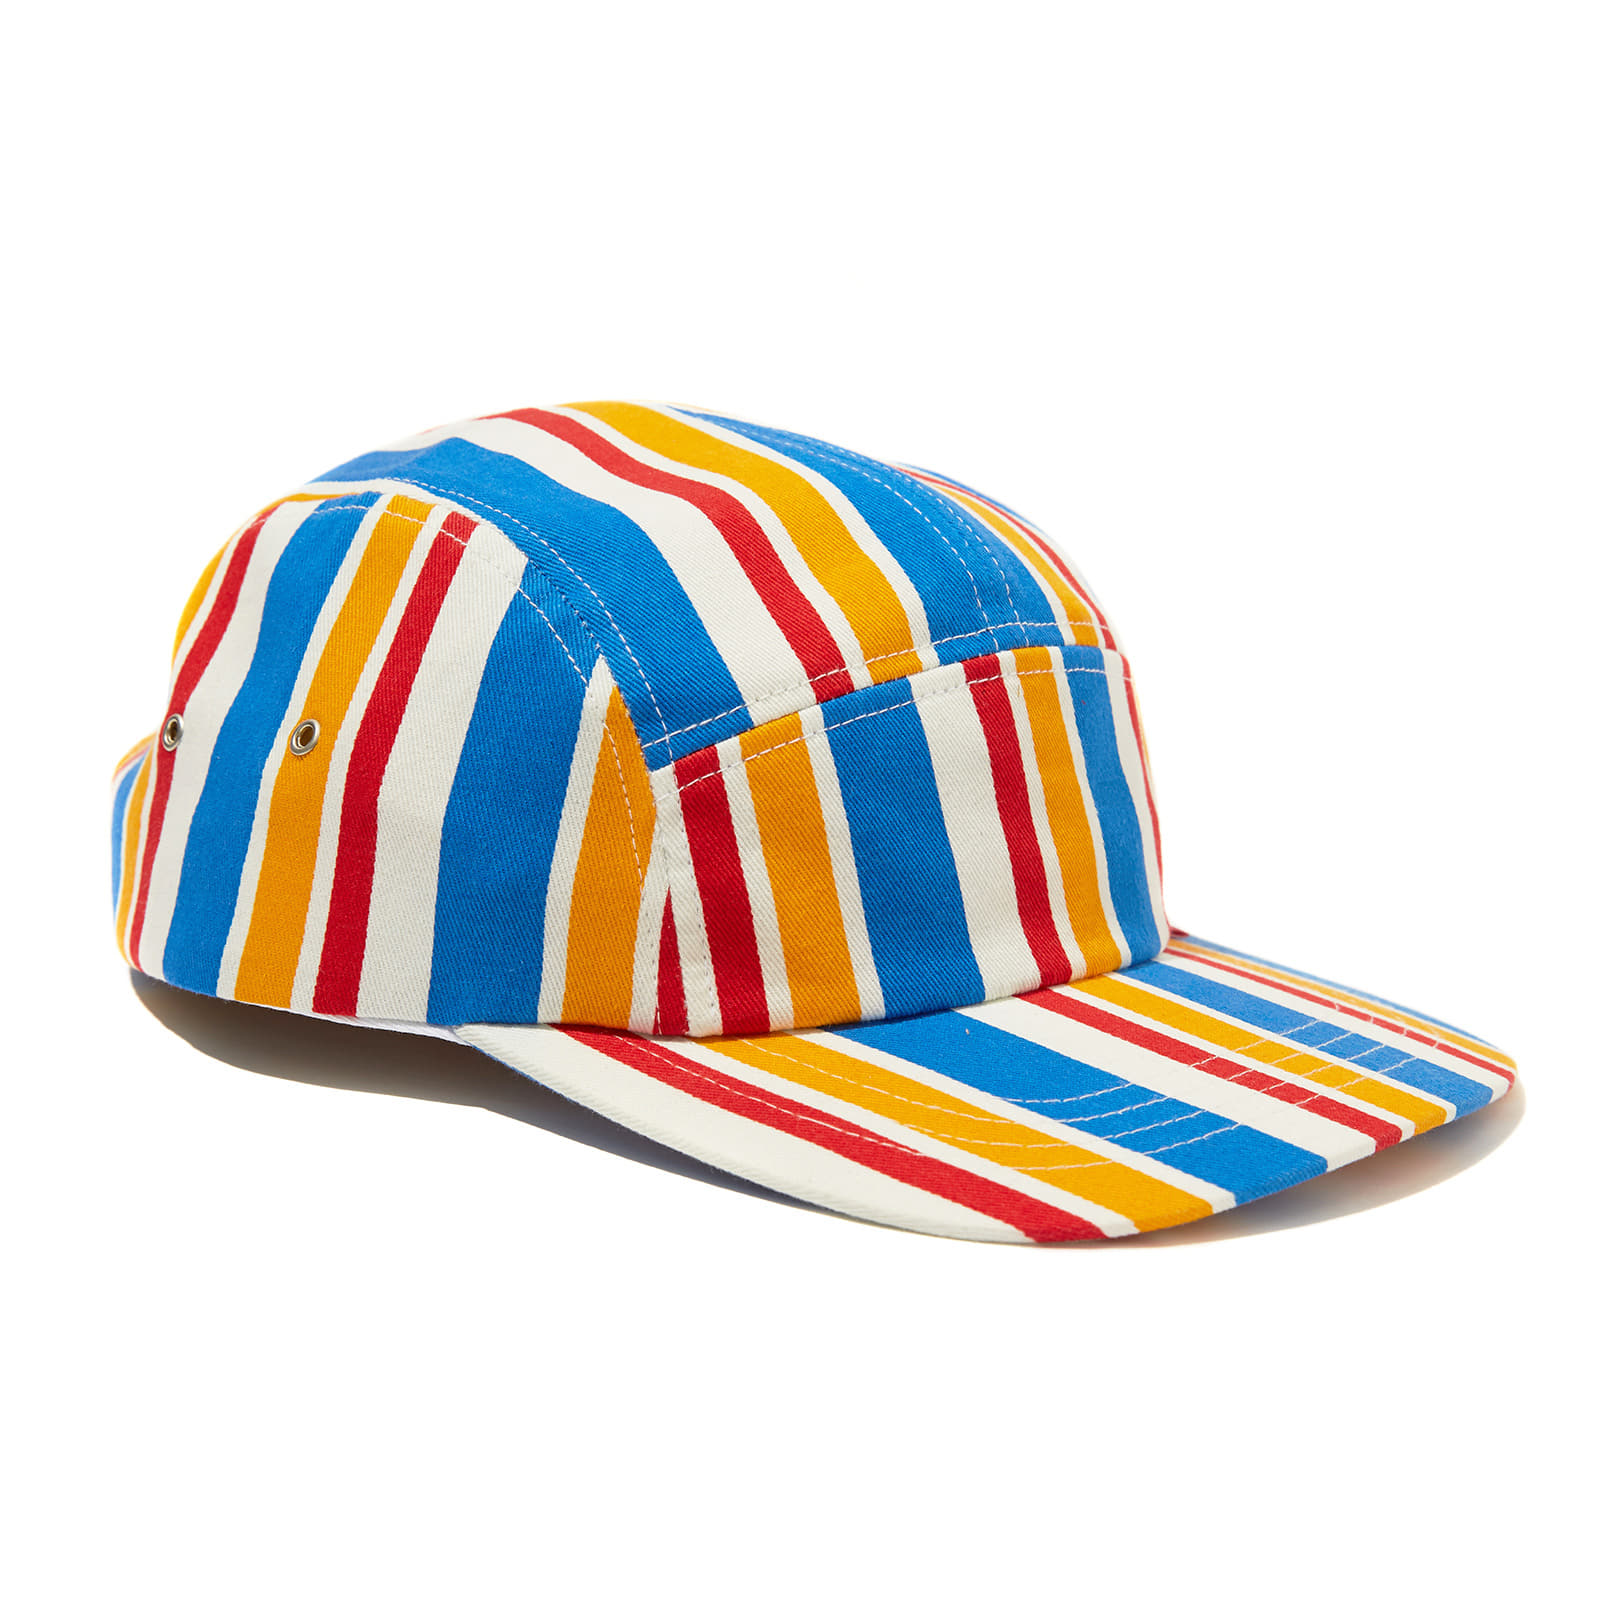 RETRO CAMP CAP (BLUE)